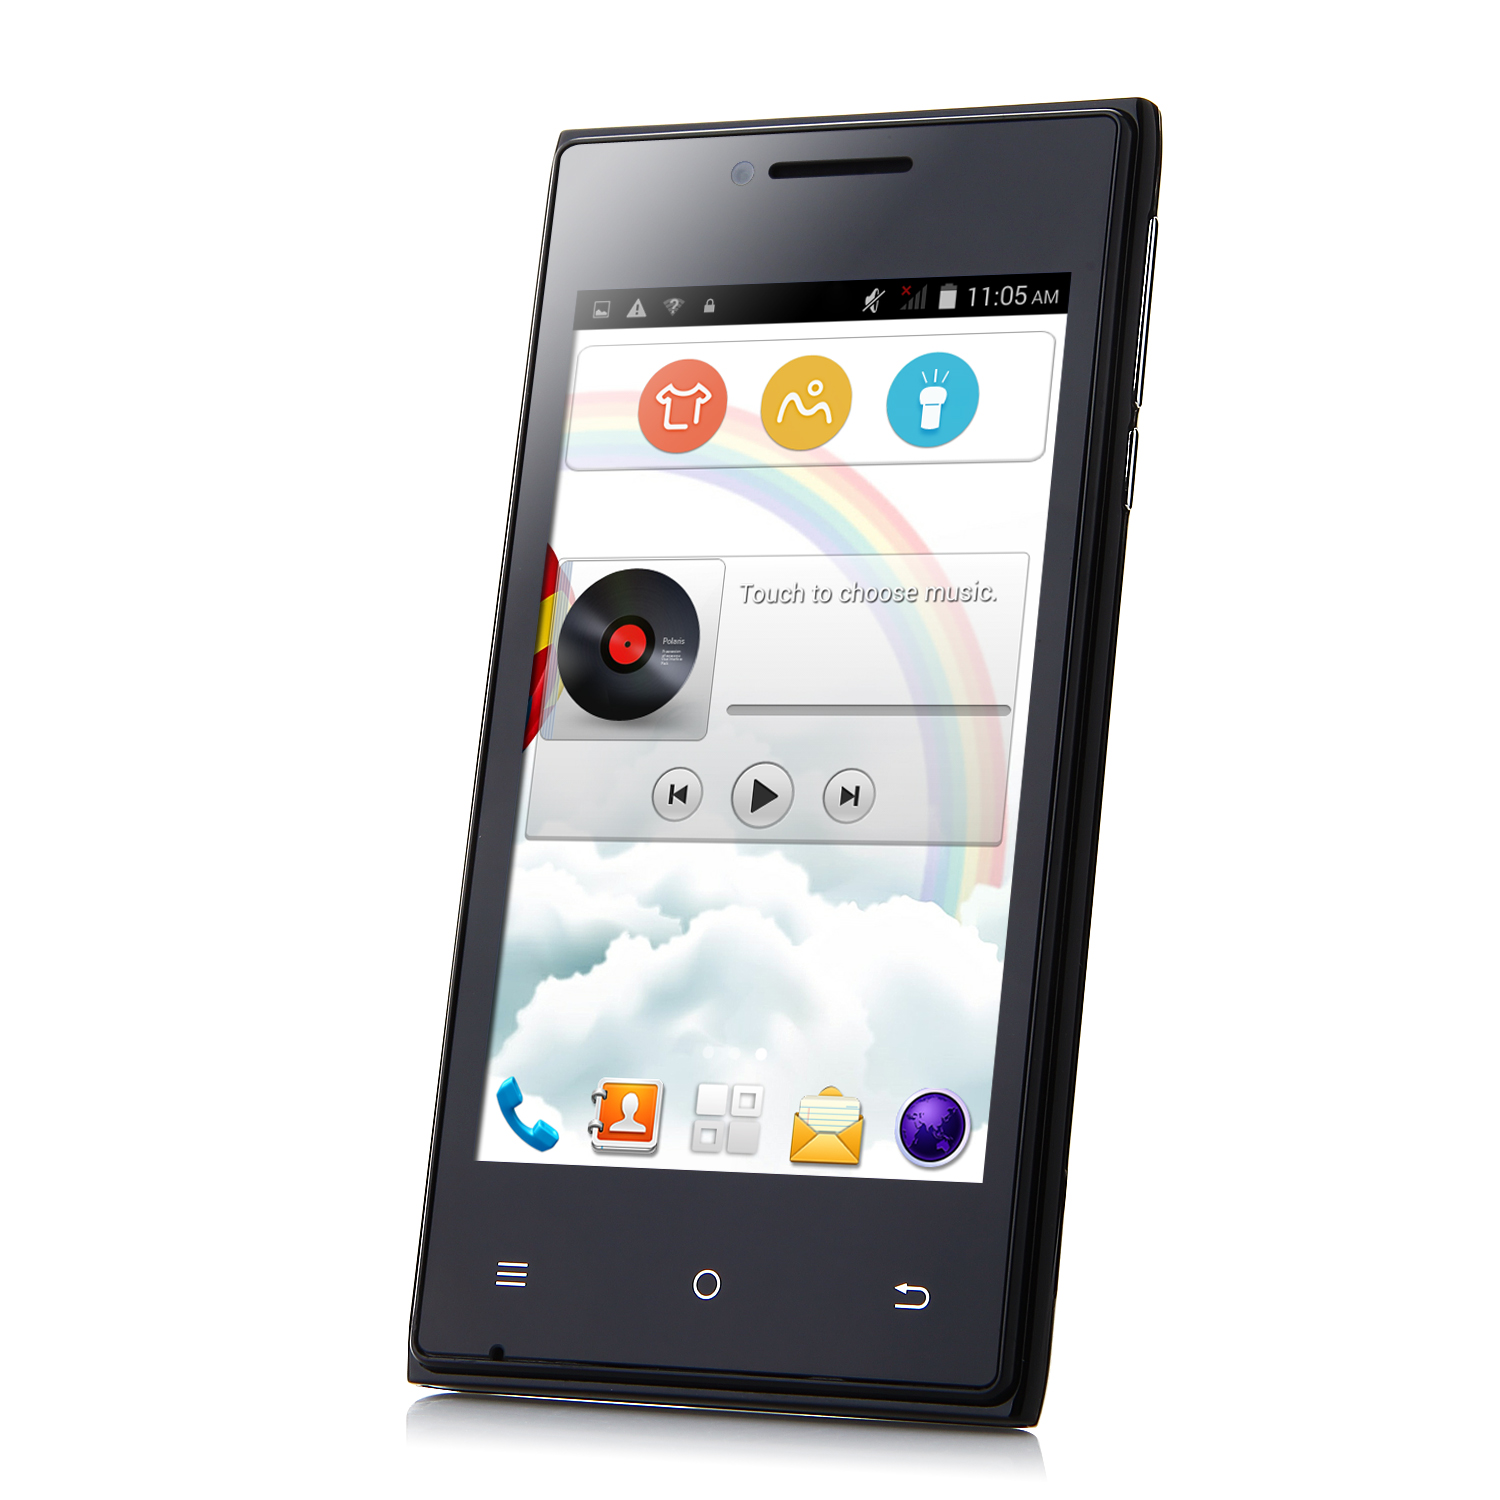 Cubot GT72+ Smartphone Android 4.4 MTK6572W Dual Core 4.0 Inch 3G Wifi Black